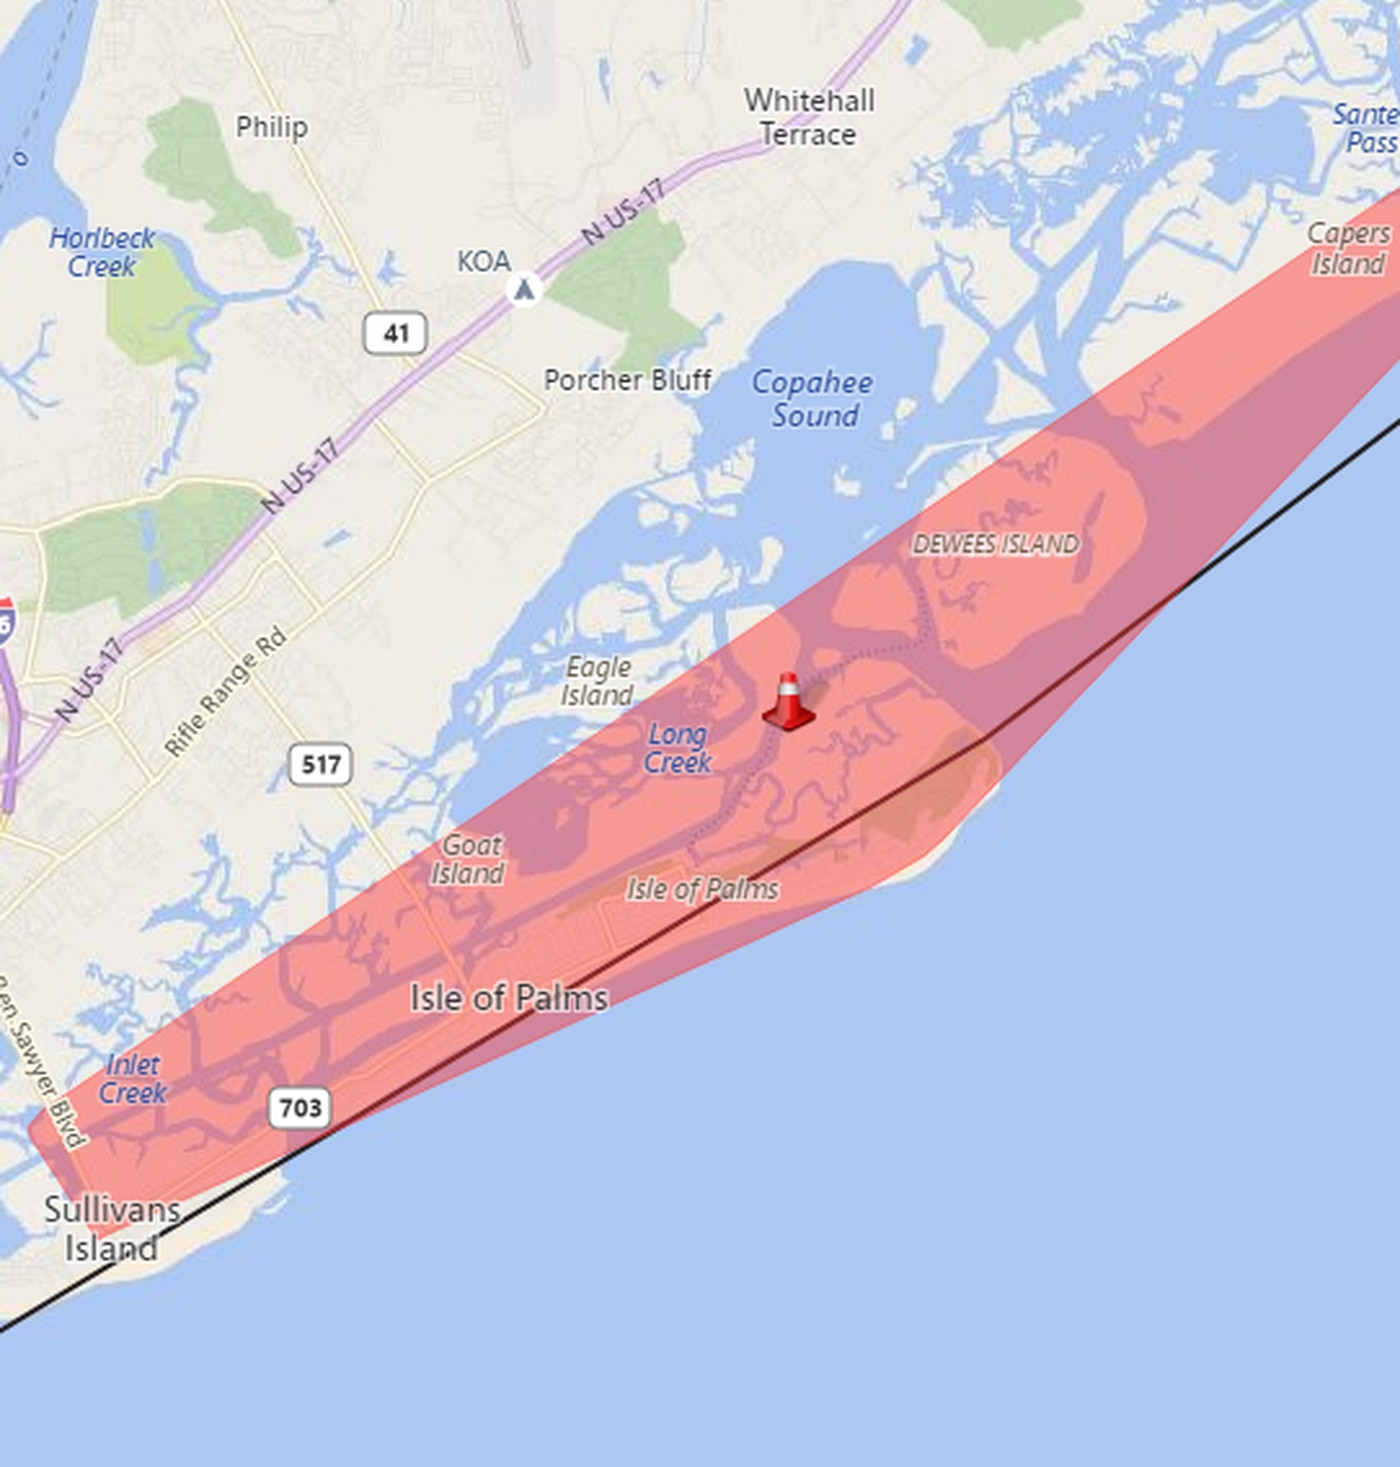 Sce G Equipment Issue Caused Early Morning Power Outage On Iop